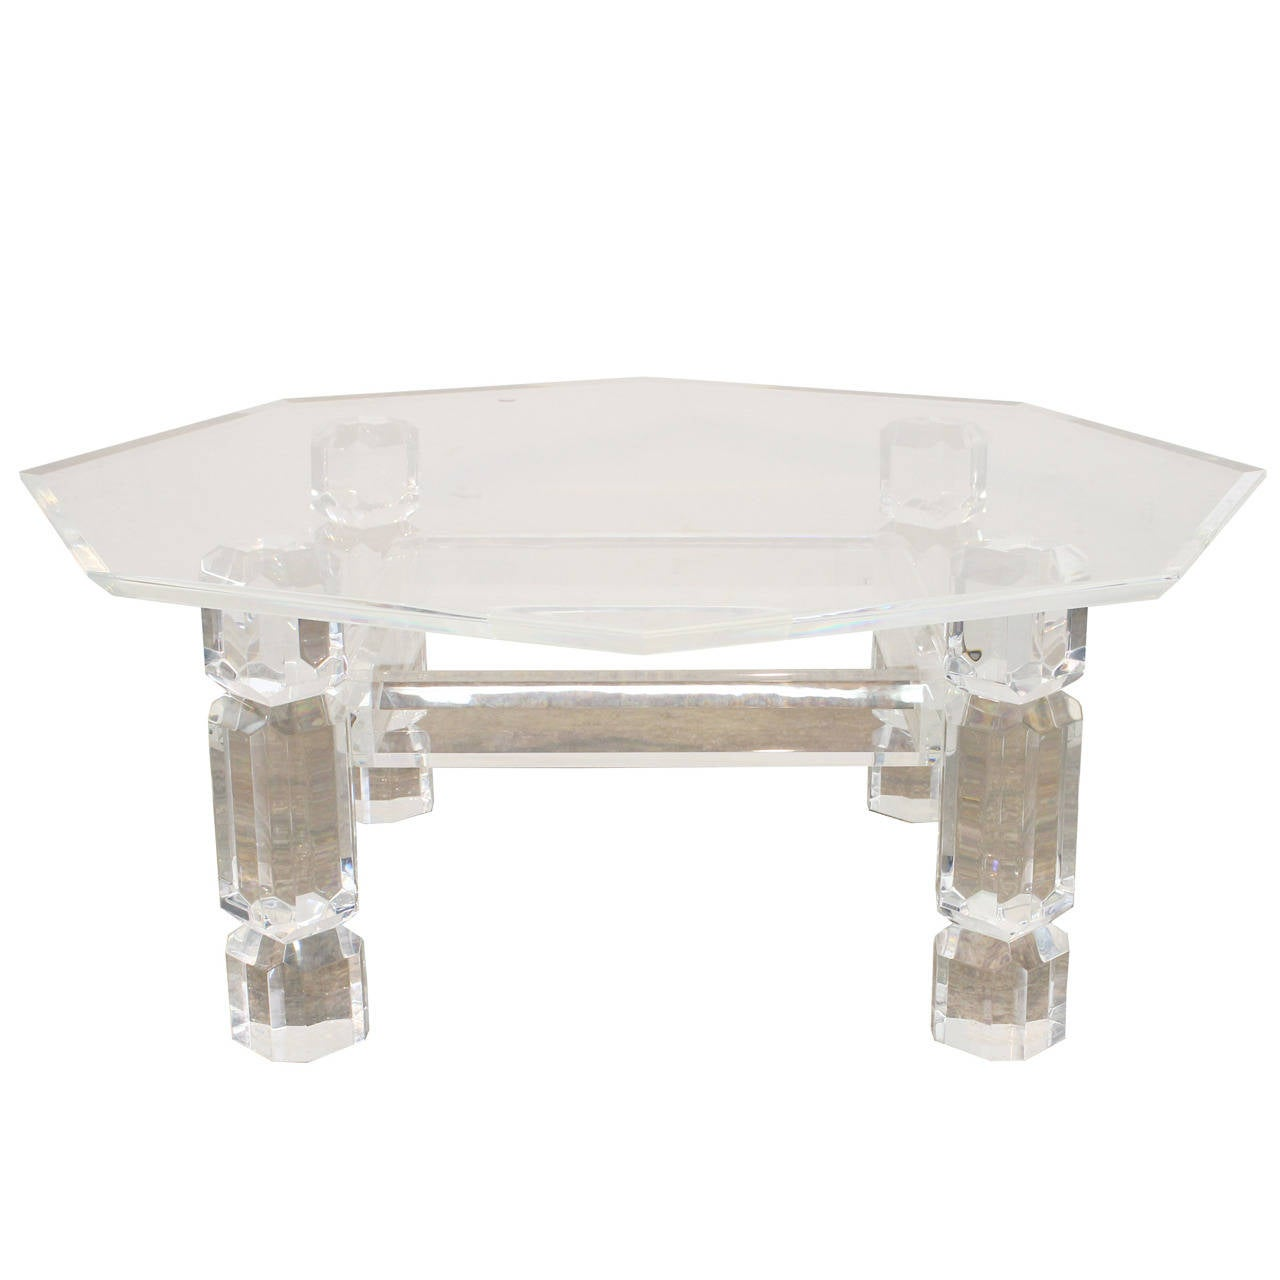 Lucite coffee table bing images Lucite coffee table ikea